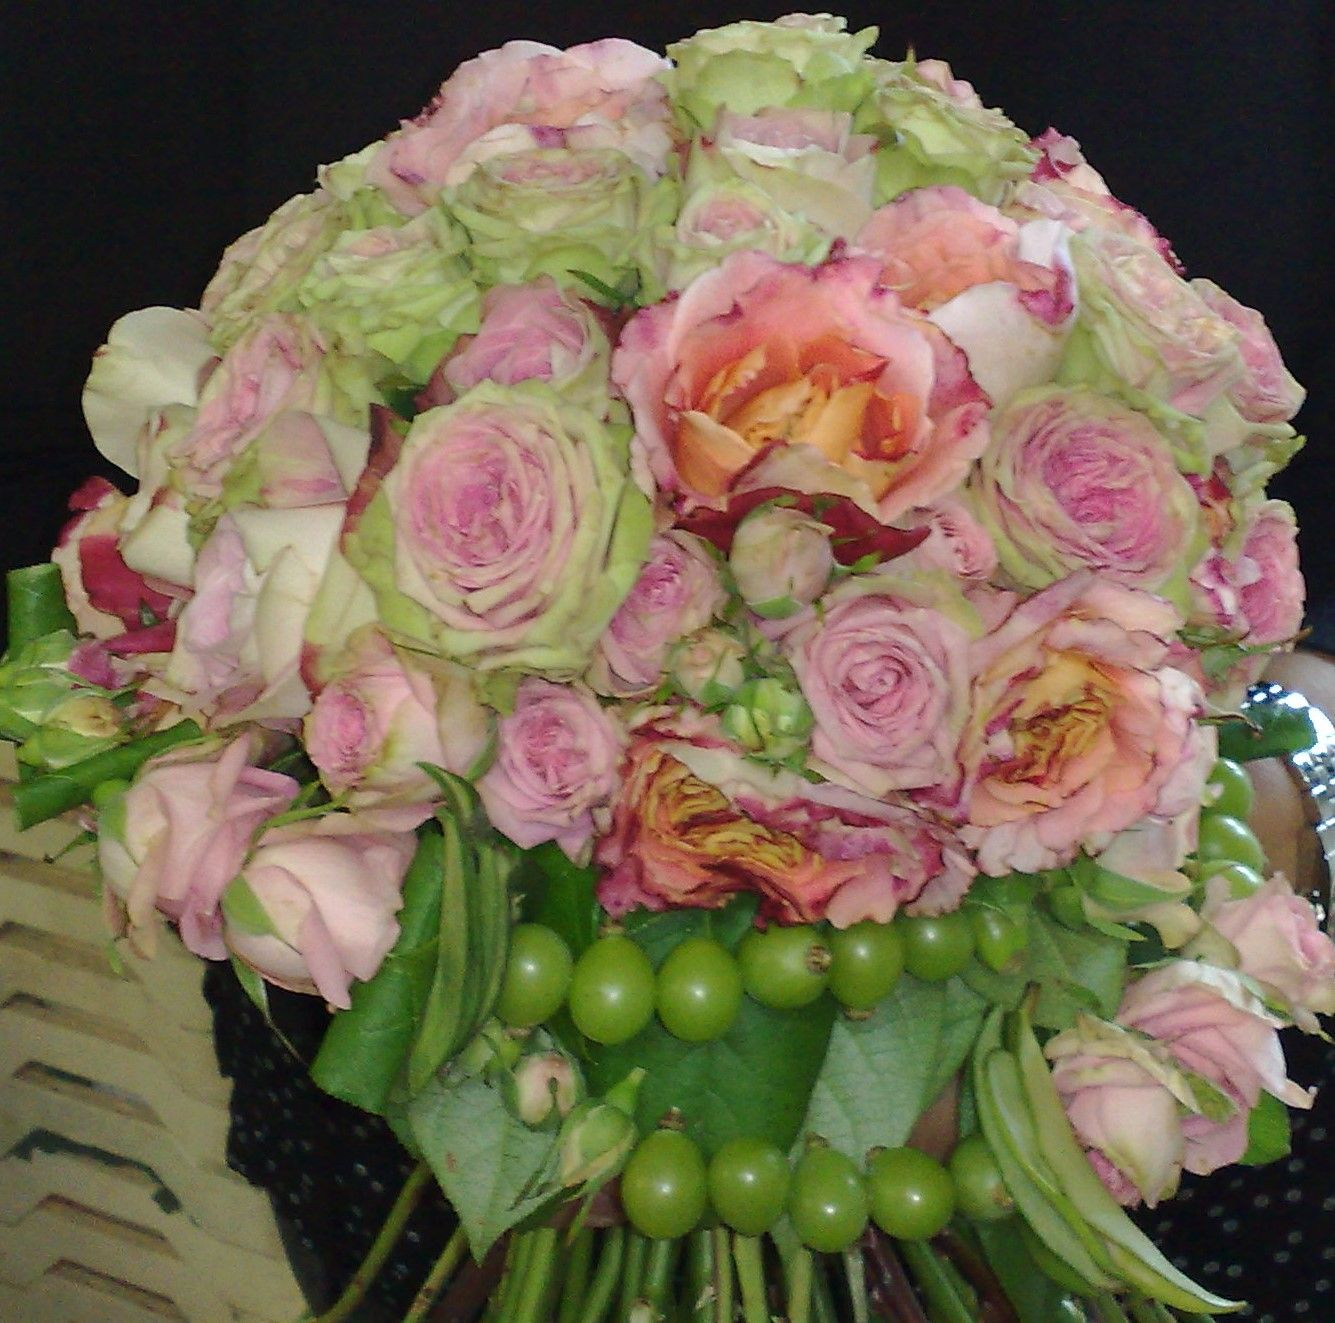 #bouquet con chicchi d'uva #anaphalisflowerdesign